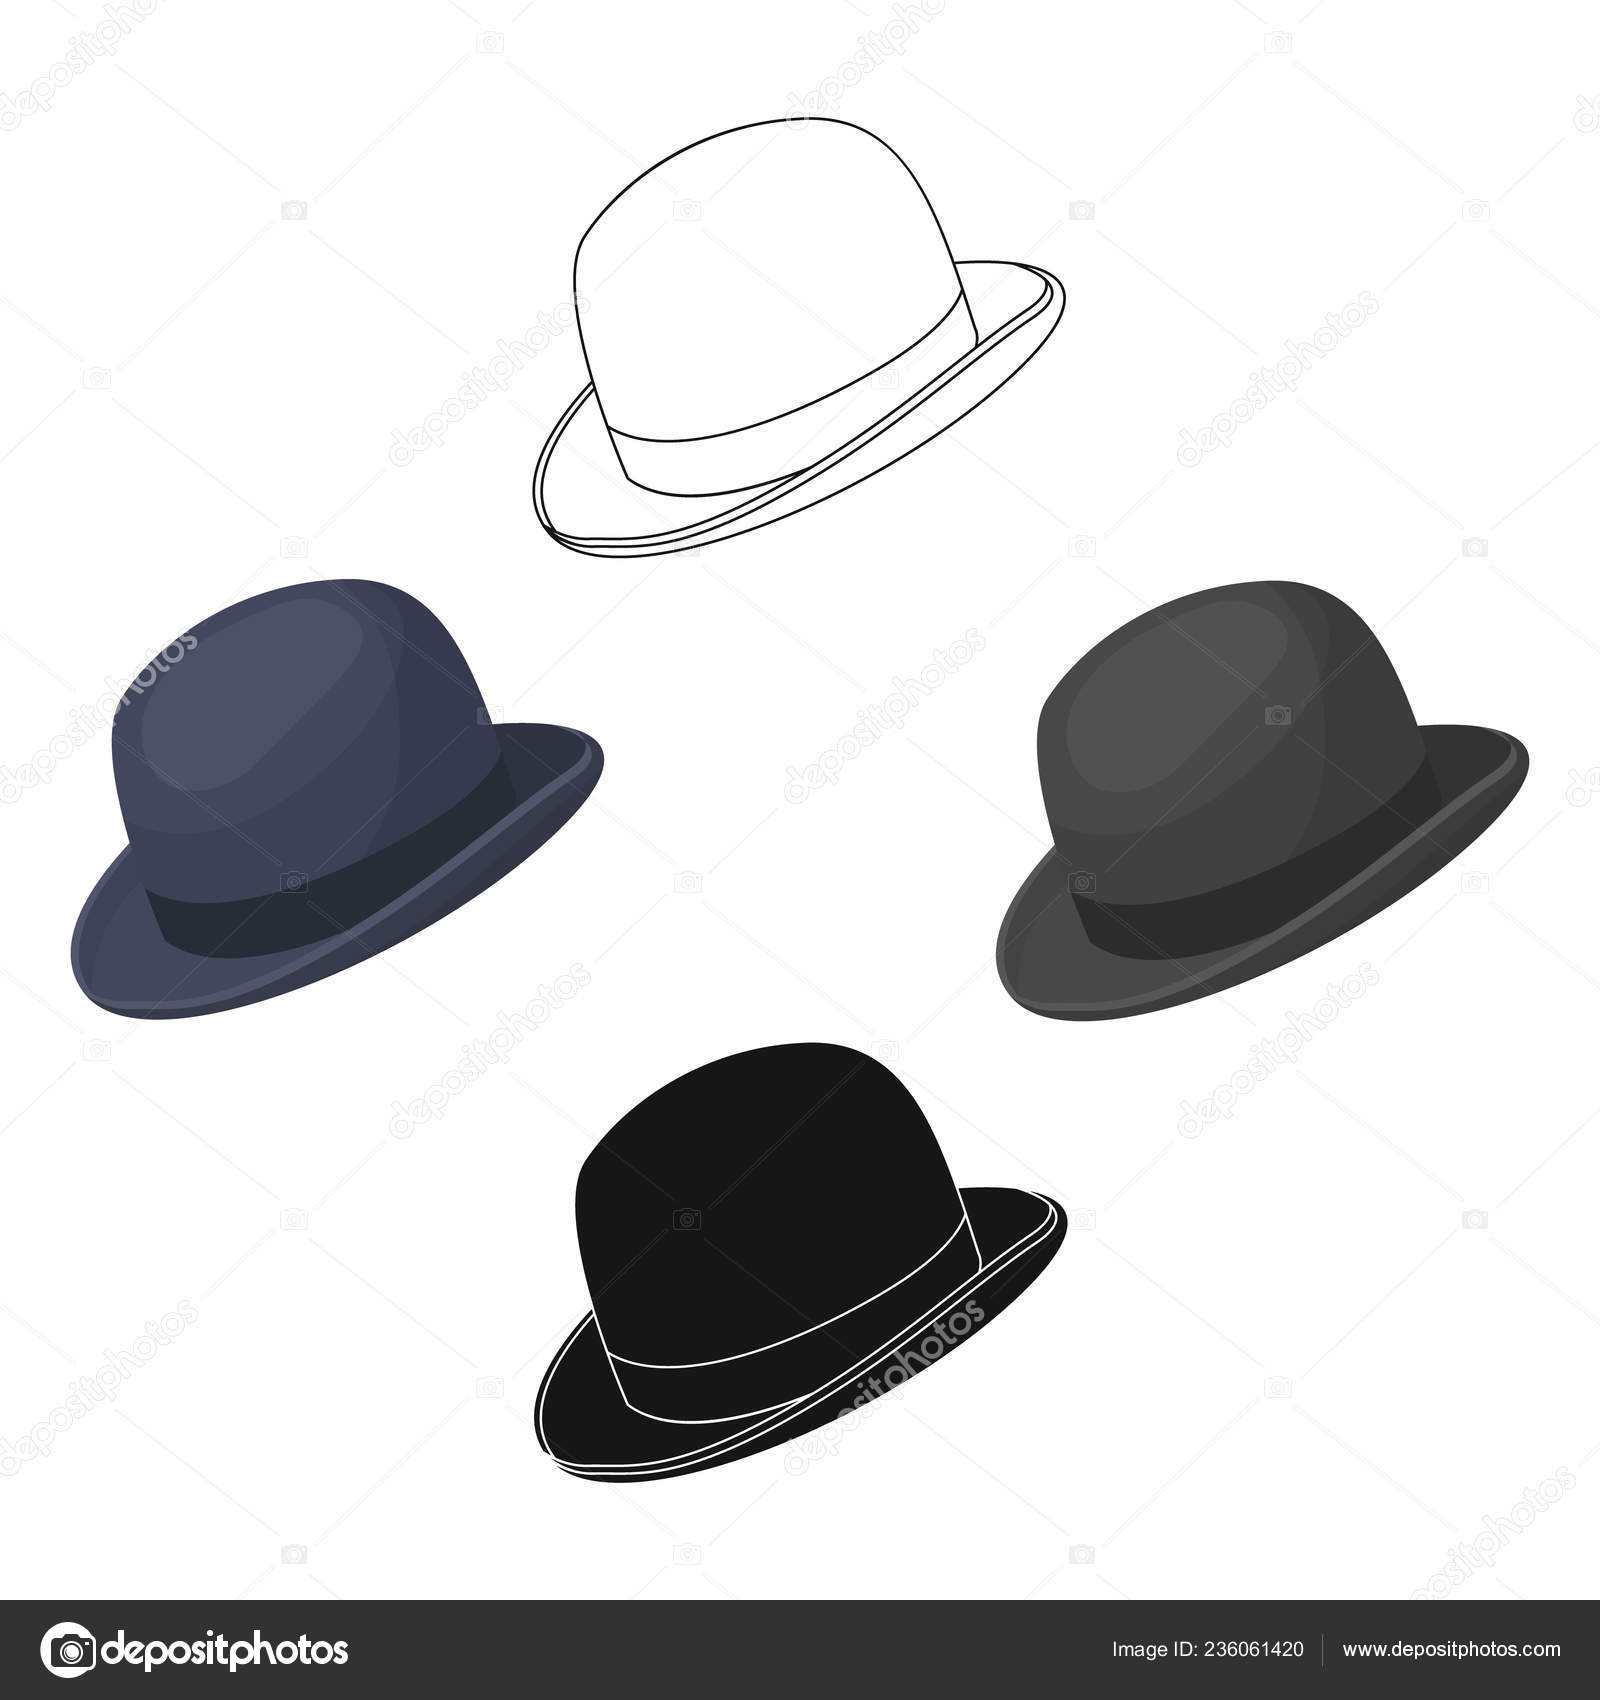 f155c2ef8f3b4 Bowler hat icon in cartoon design isolated on white background. Hipster  style symbol stock vector illustration.